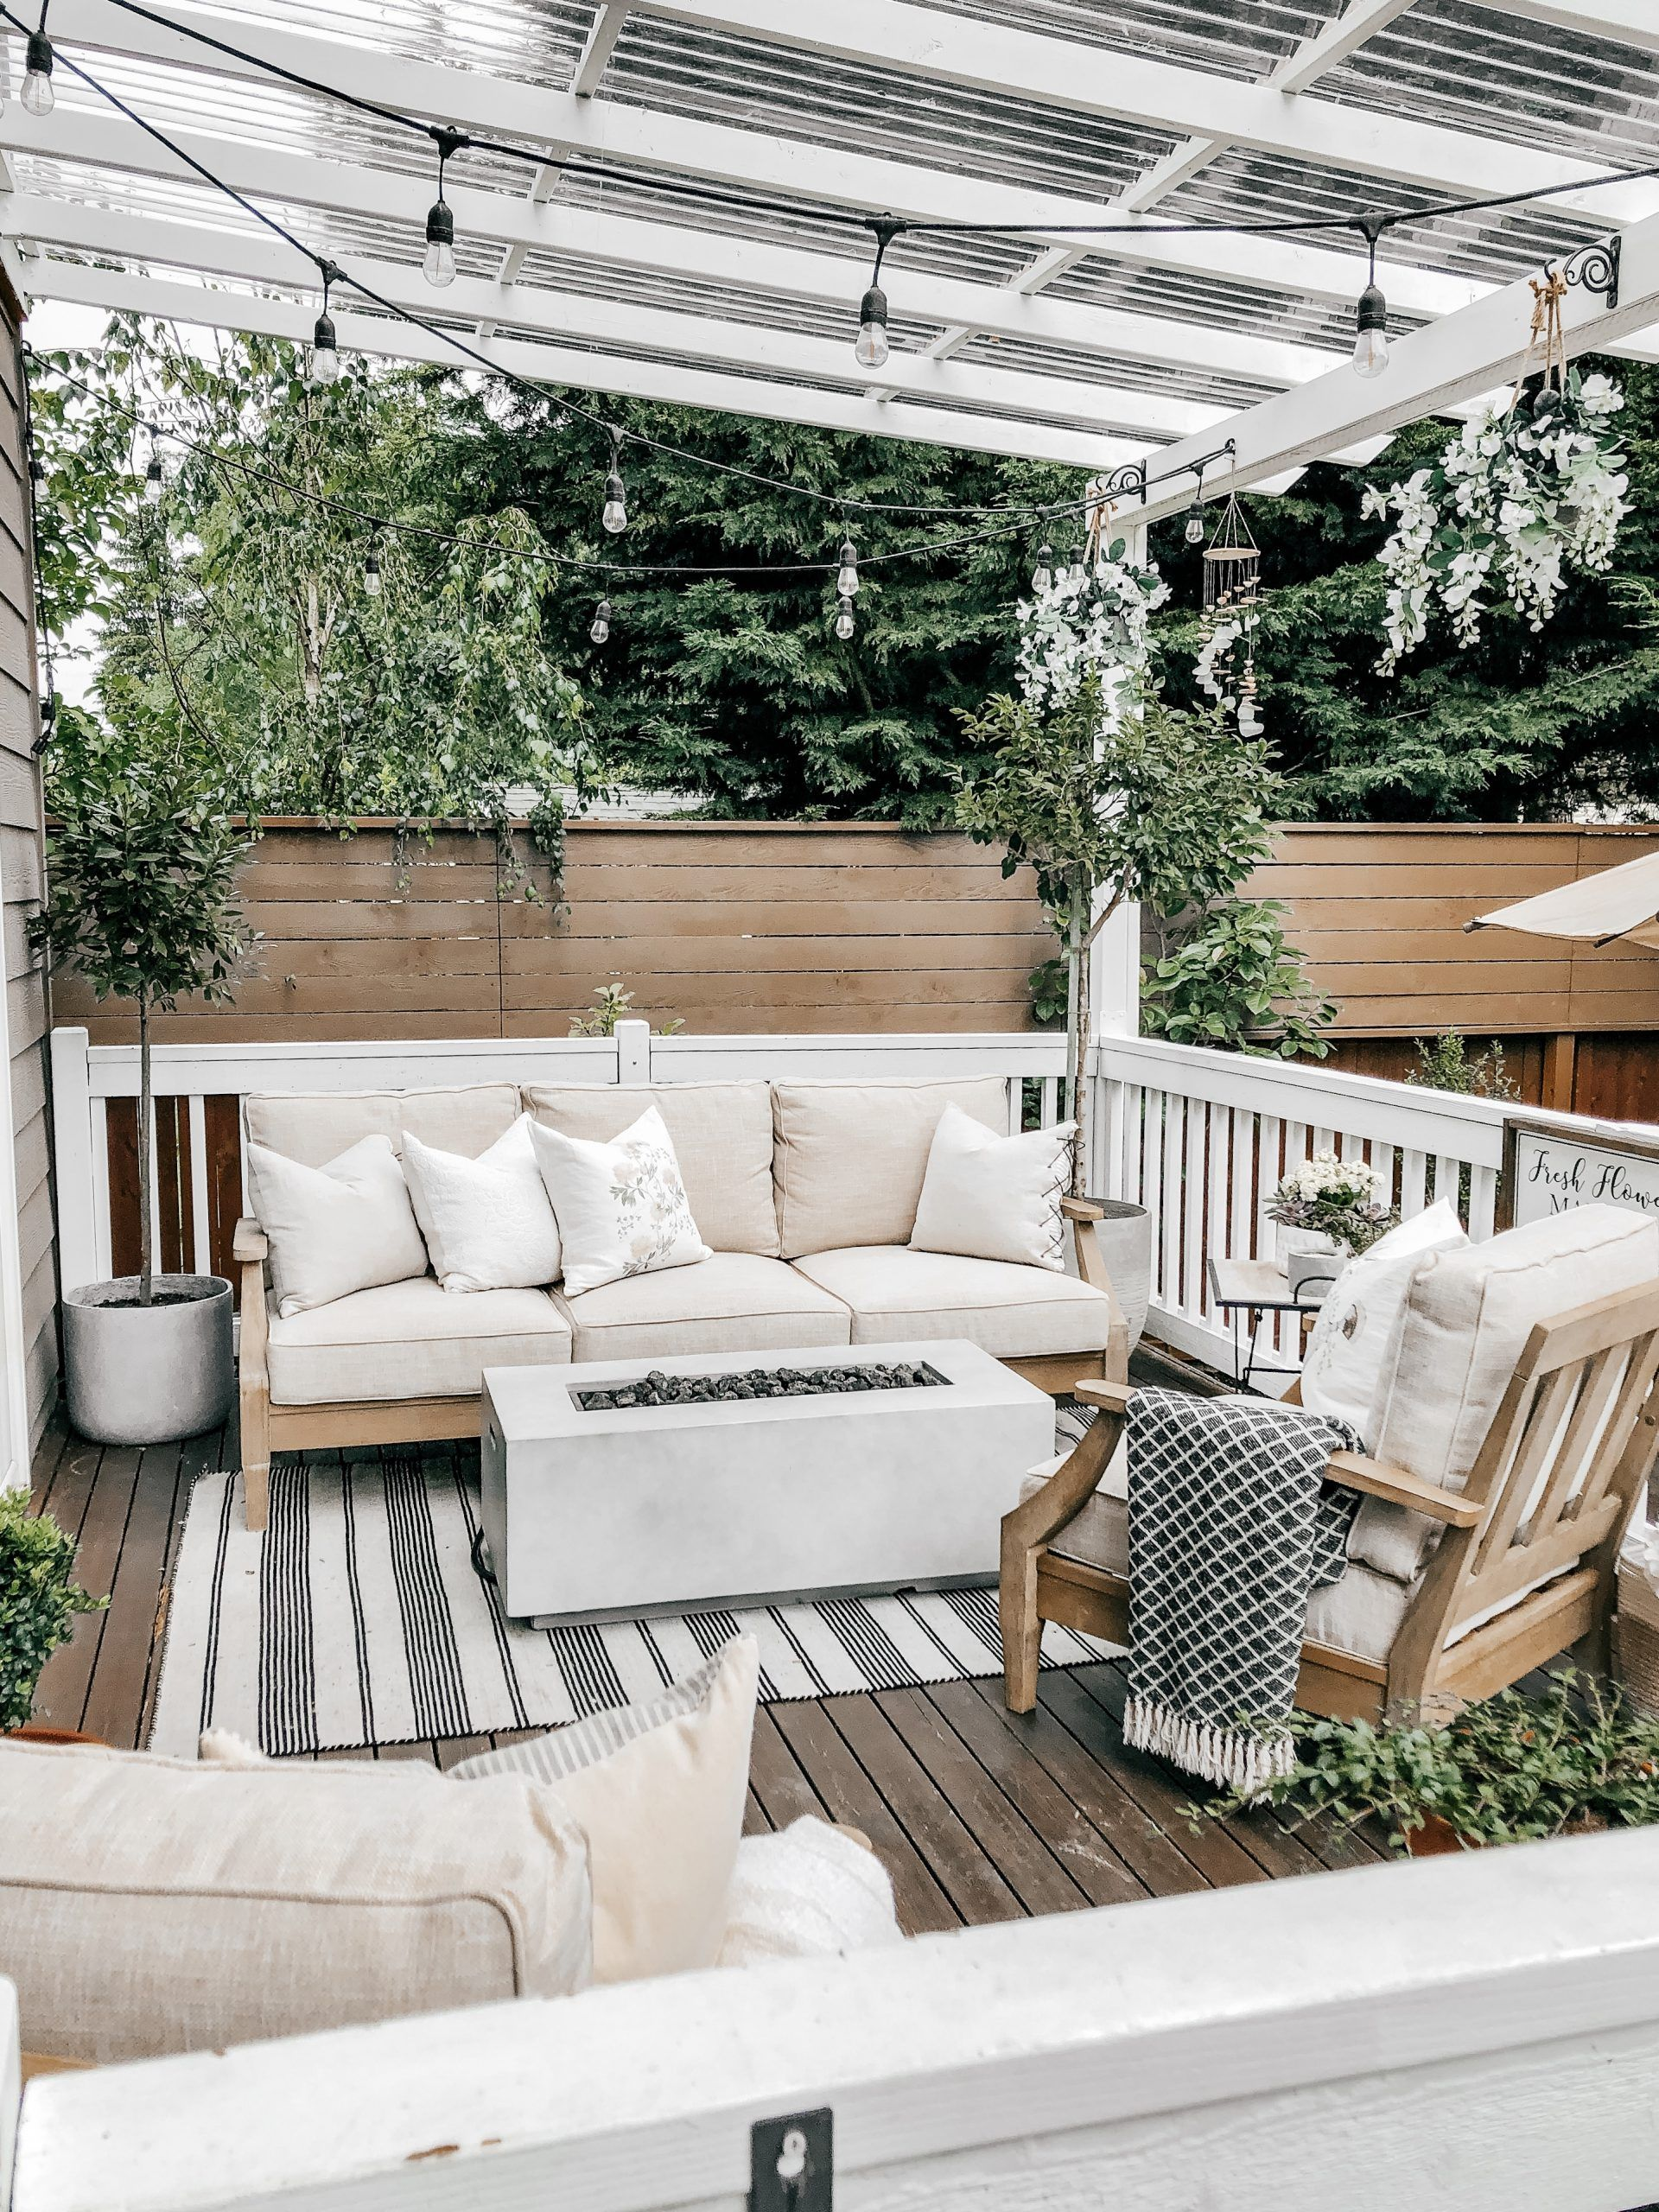 Creating A Cozy Cottage Style Backyard Oasis Designed For Entertaining With A Clear Covered Pergola In 2020 Backyard Oasis Concrete Patio Neutral Outdoor Furniture